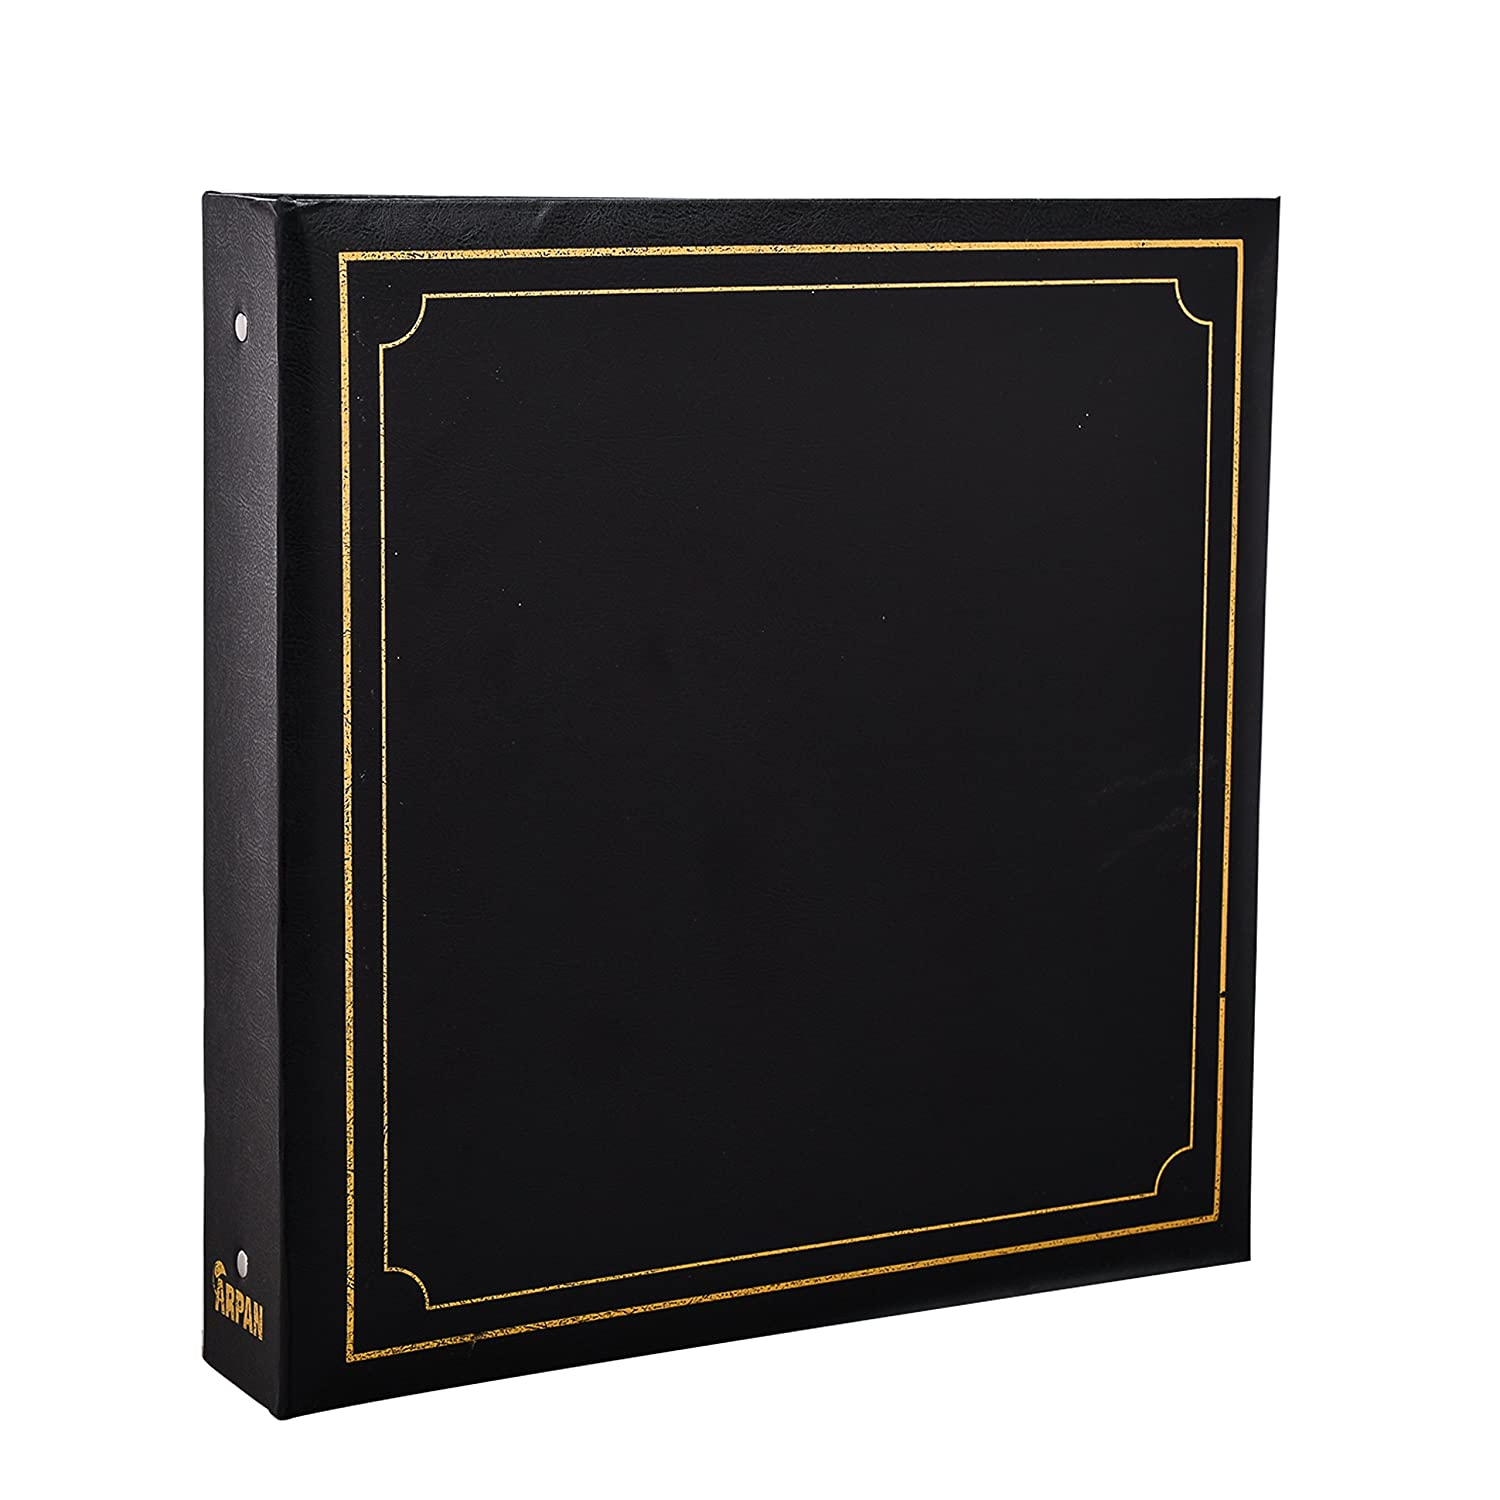 ARPAN Large 6x4 Photo Album for 500 Photo's - Black Padded Leather Look AL-9174